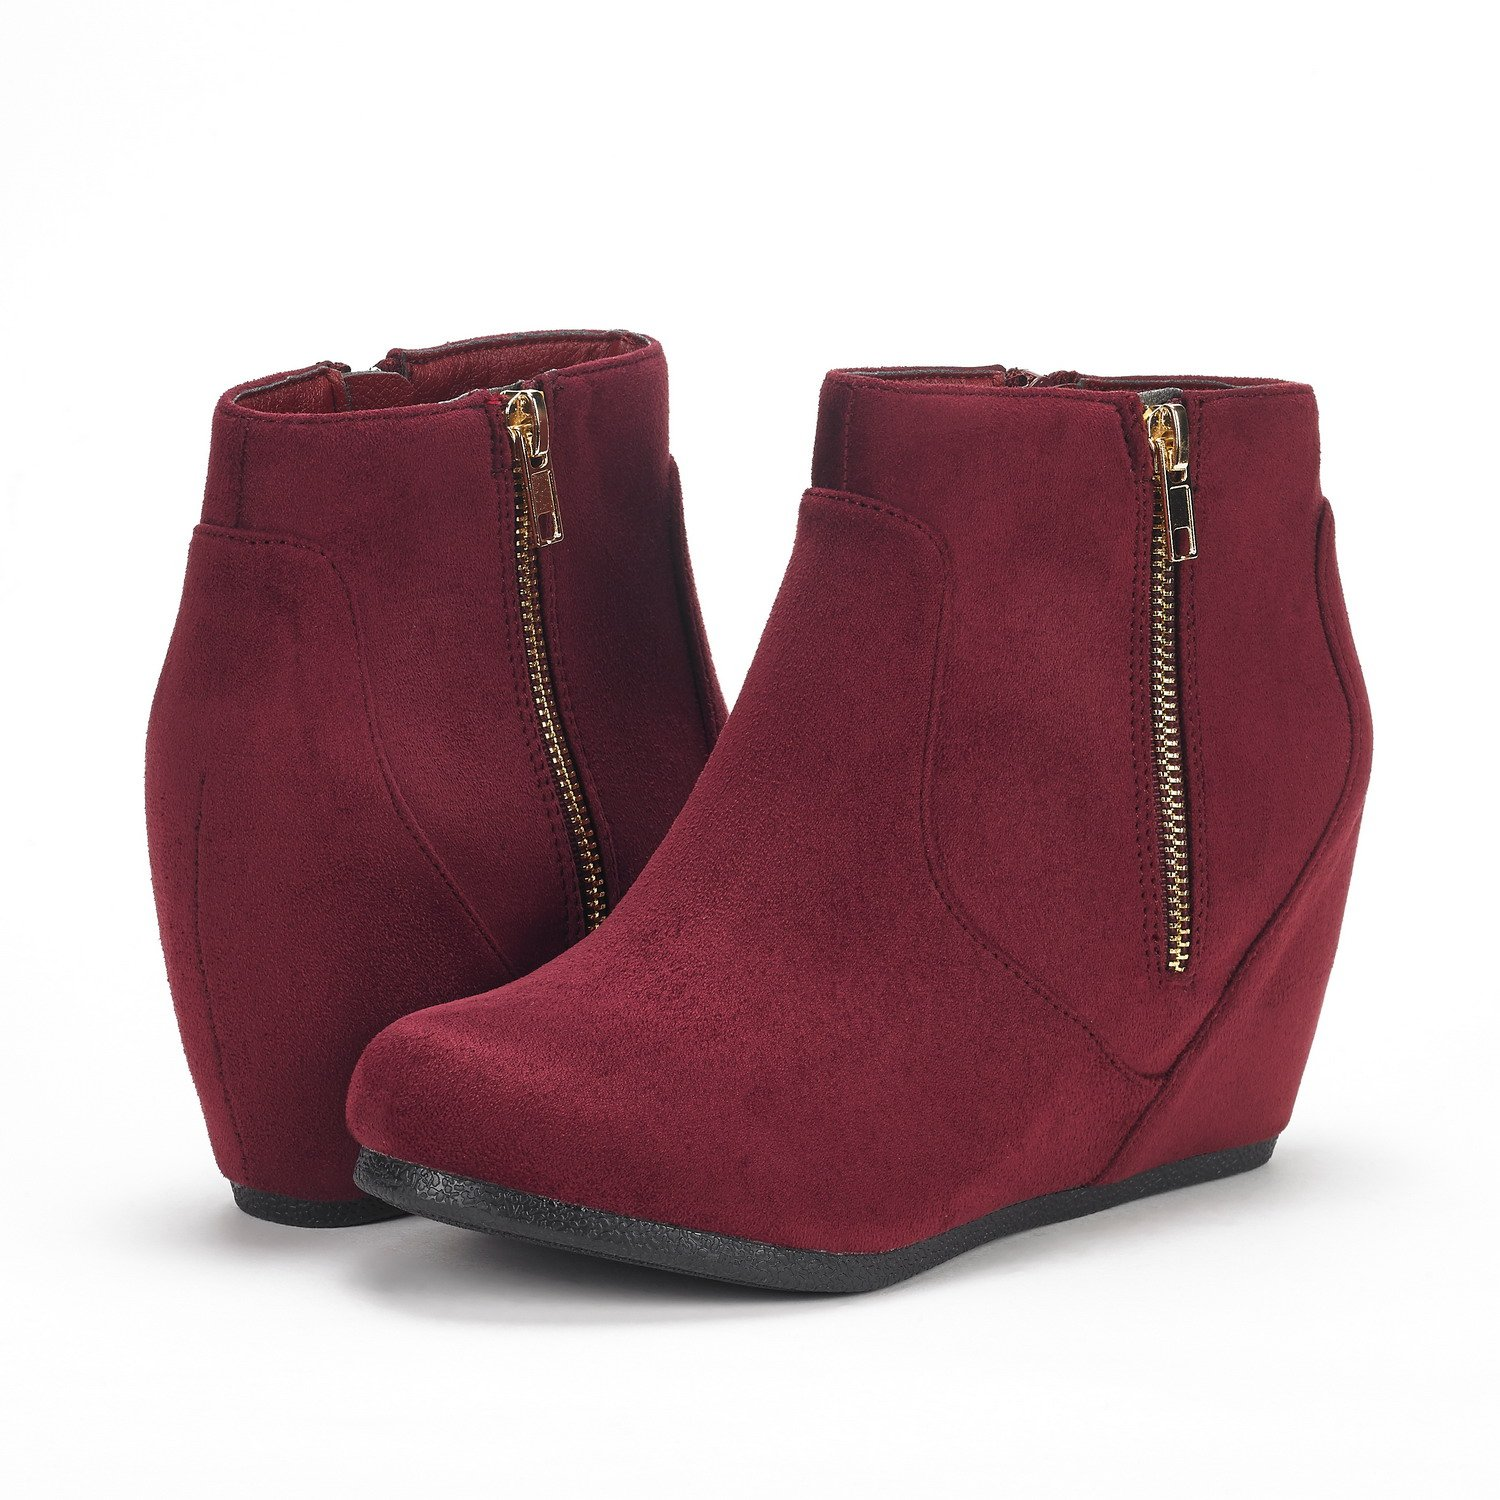 6c33d486f Amazon.com | DREAM PAIRS Women's NARIE-New Suede Low Wedges Ankle Boots |  Ankle & Bootie